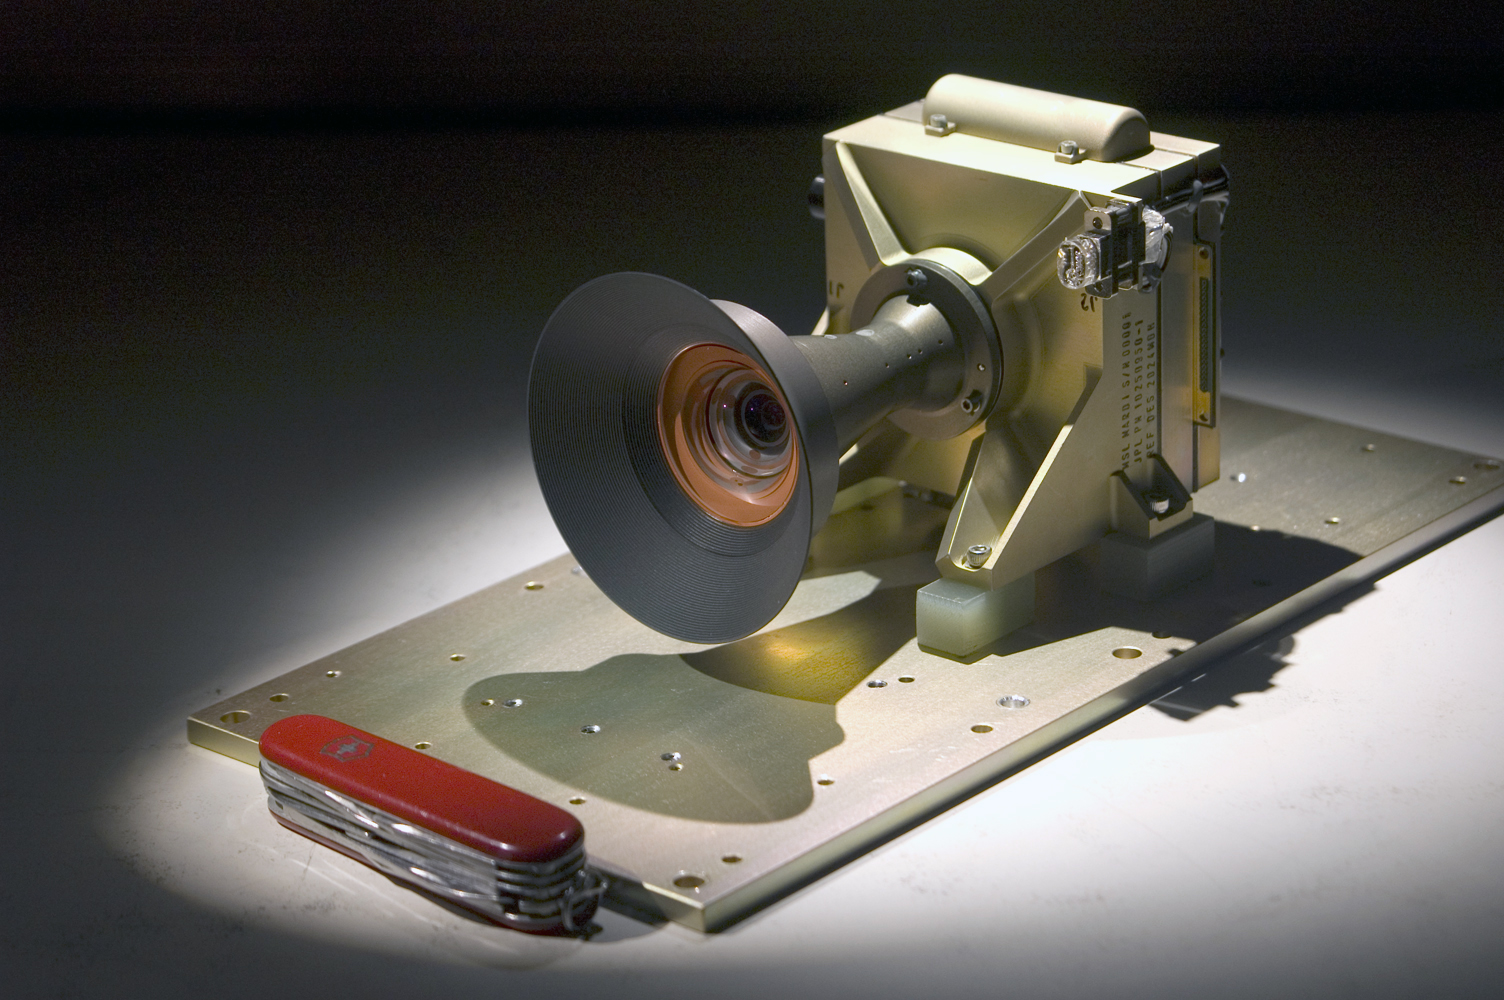 This Mars Descent Imager (MARDI) camera will fly on the Curiosity rover of NASA's Mars Science Laboratory mission.